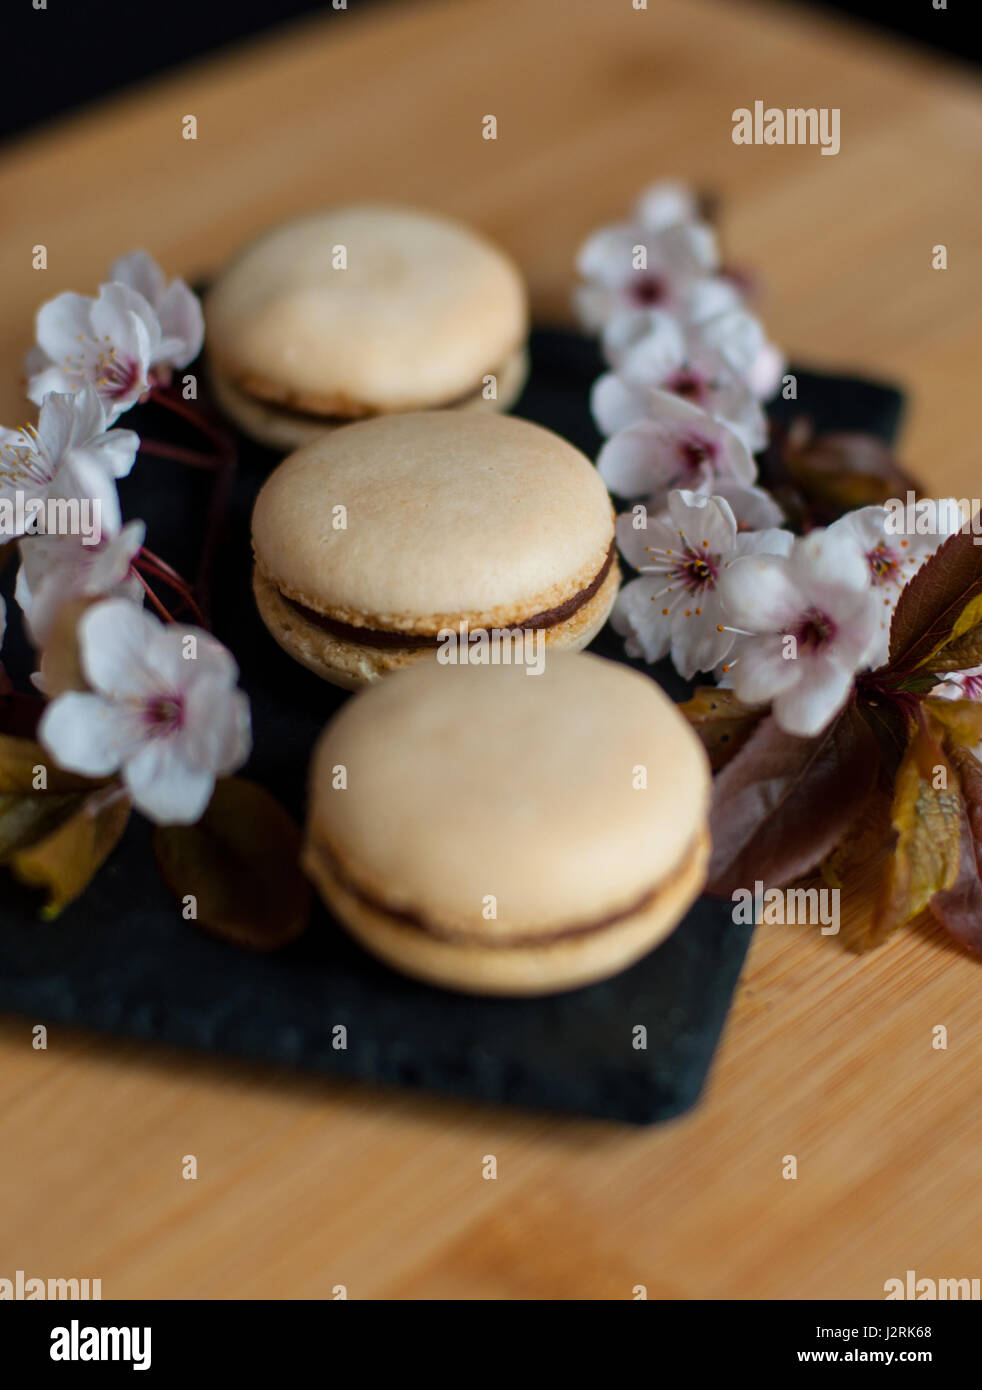 Macaroons decorated with flowers - Stock Image